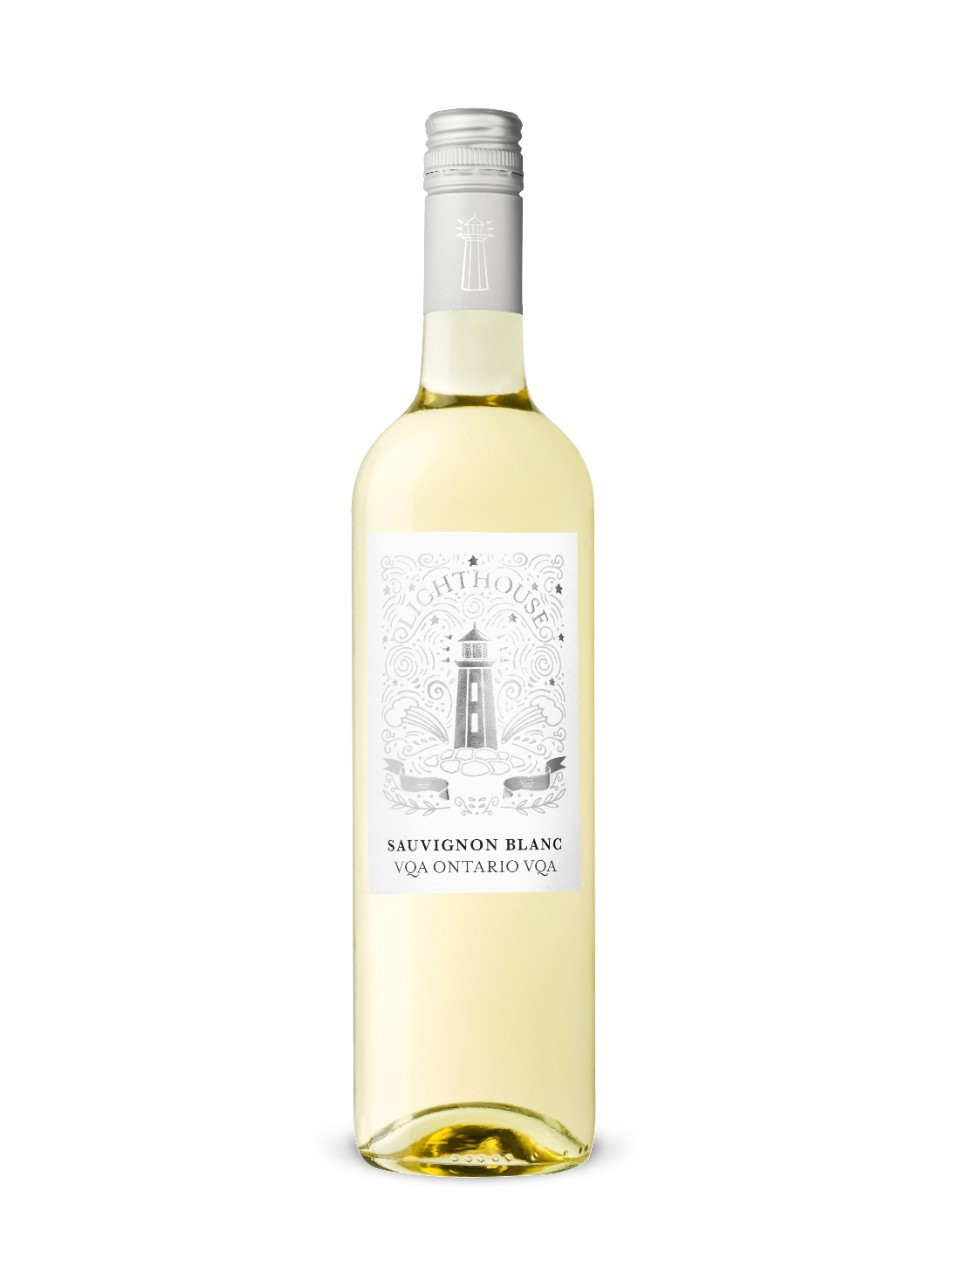 Pelee Island Lighthouse Sauvginon Blanc VQA from LCBO